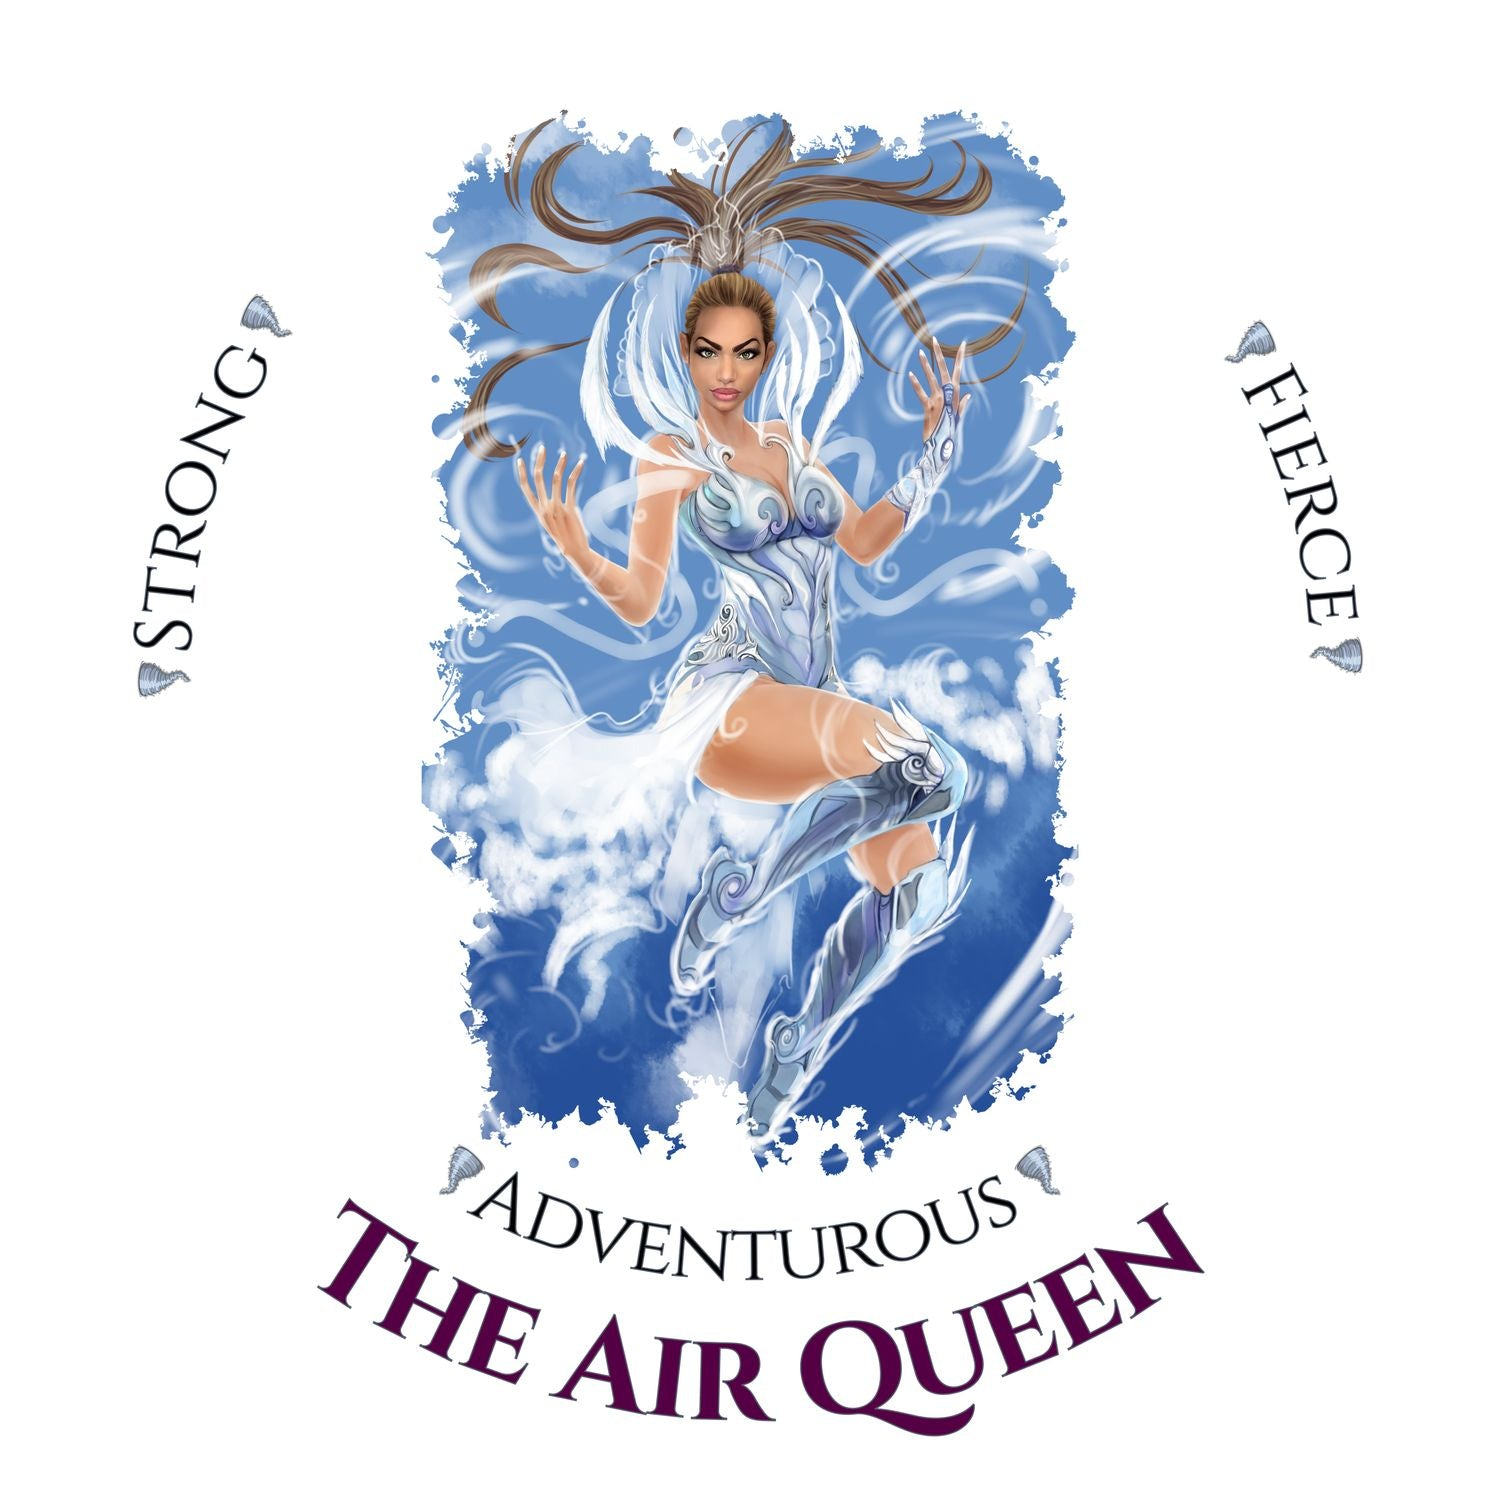 Naturally Wicked Air Queen Surrounded By Air & Text - Fierce, Strong & Adventurous